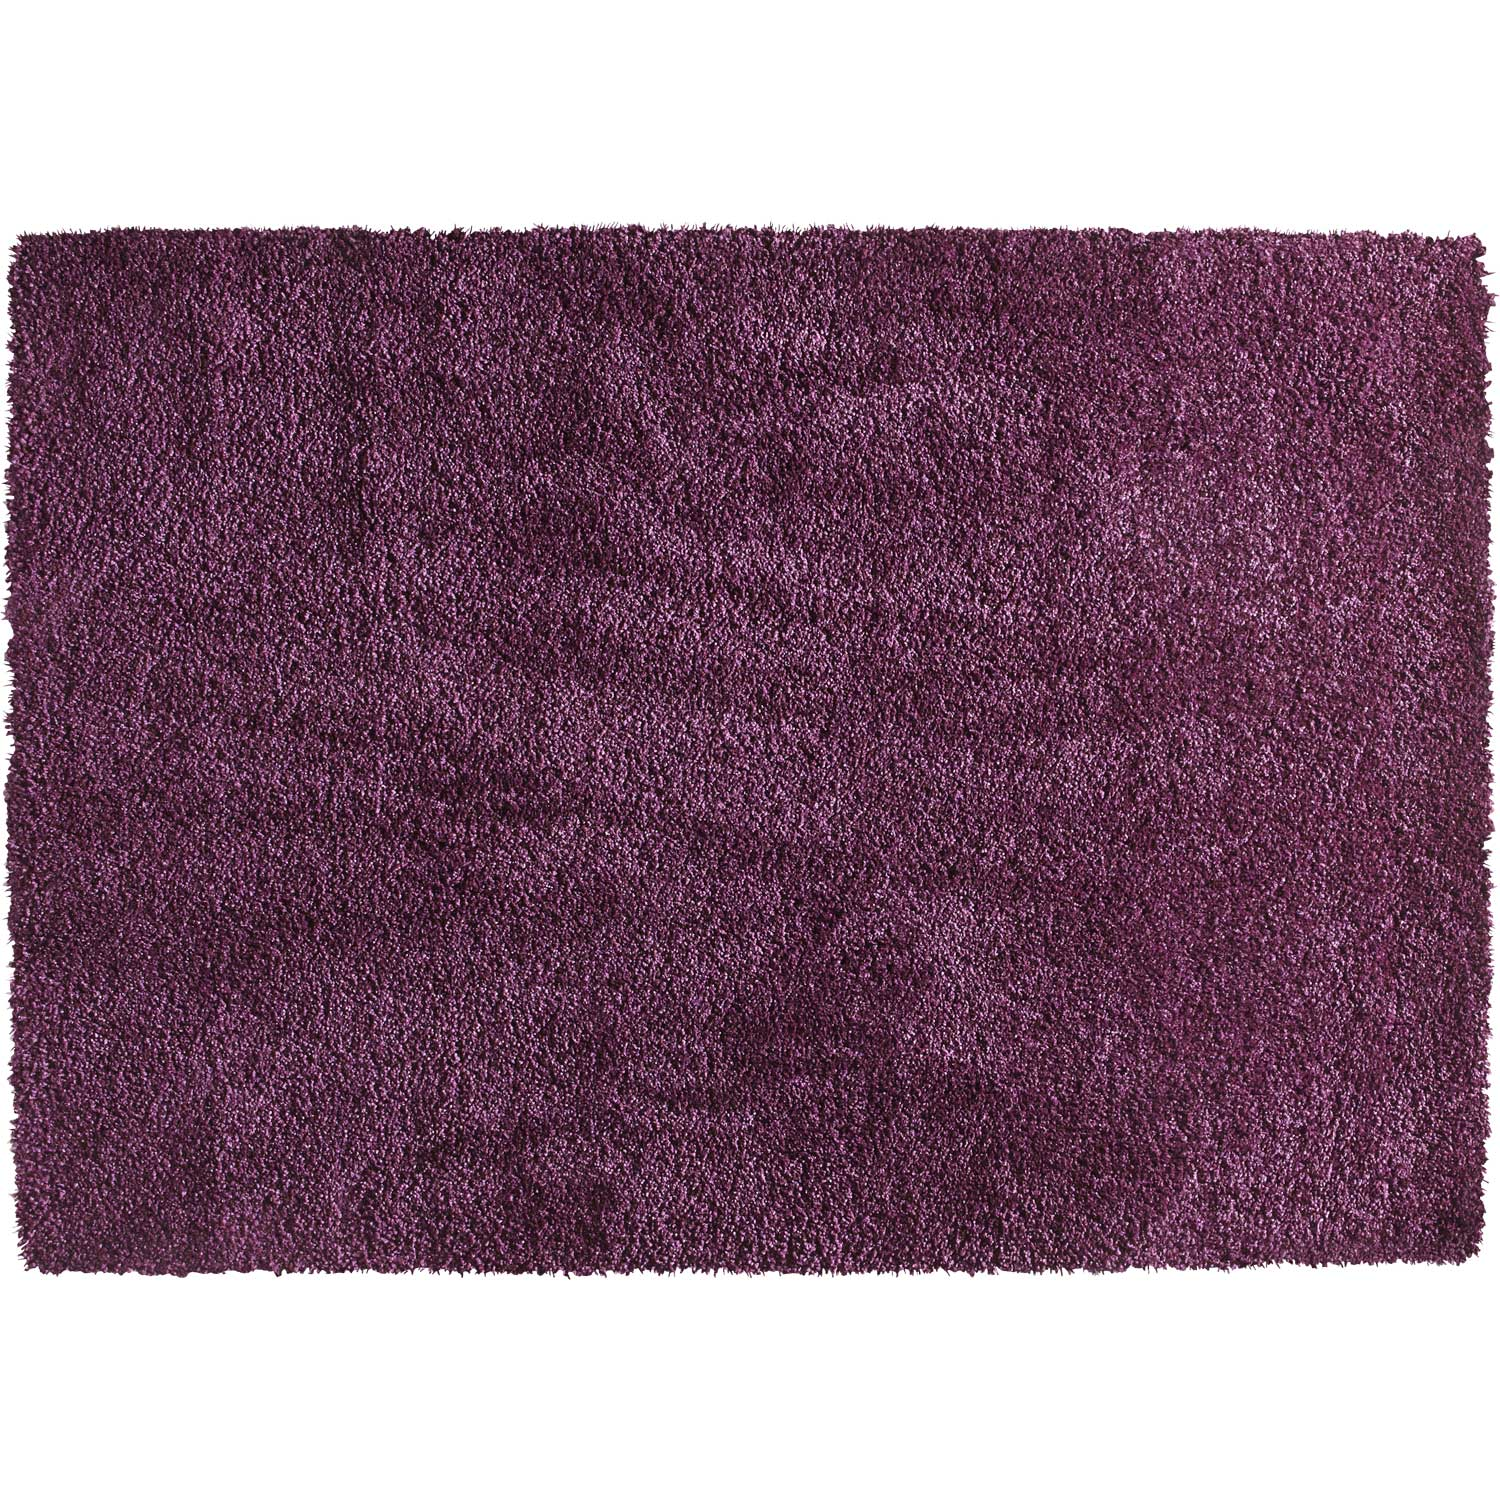 Tapis Shaggy Lizzy Violet 170x120 Cm Leroy Merlin